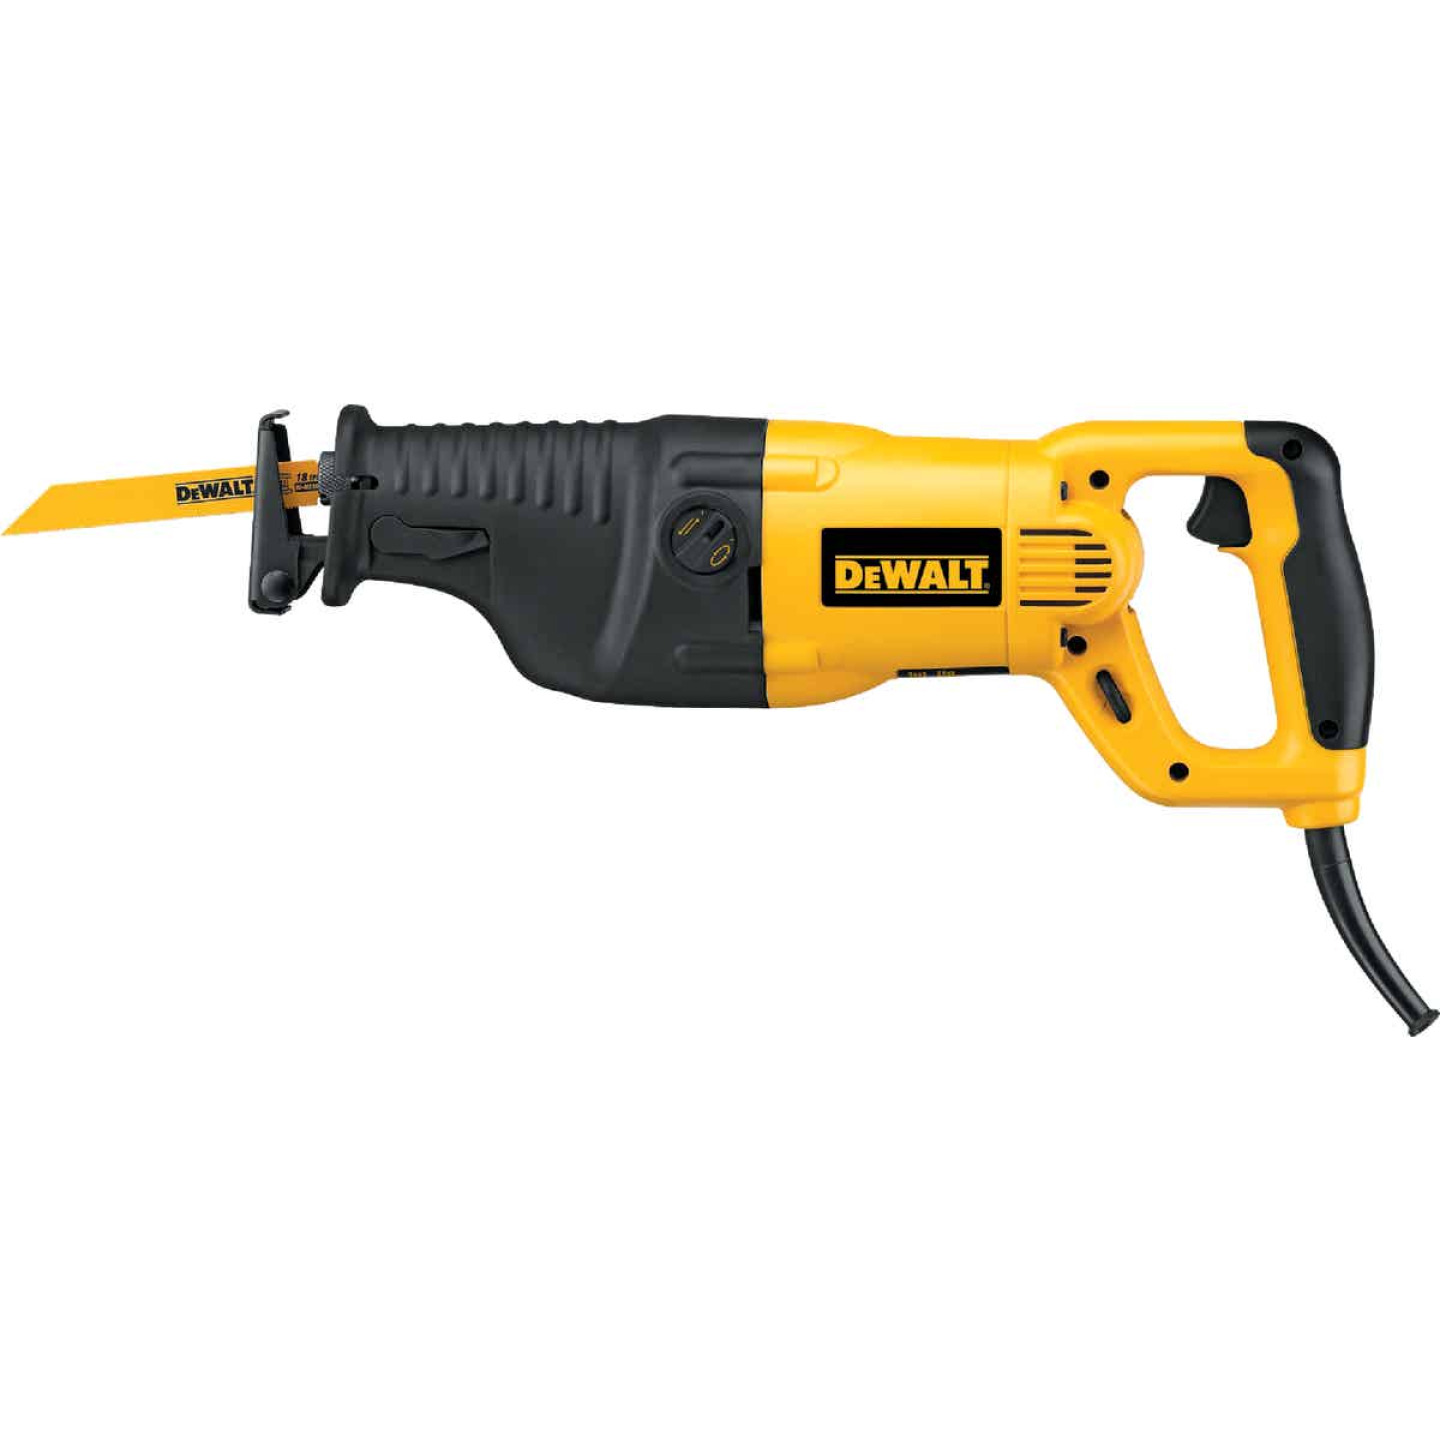 DeWalt 13-Amp Reciprocating Saw Kit Image 6